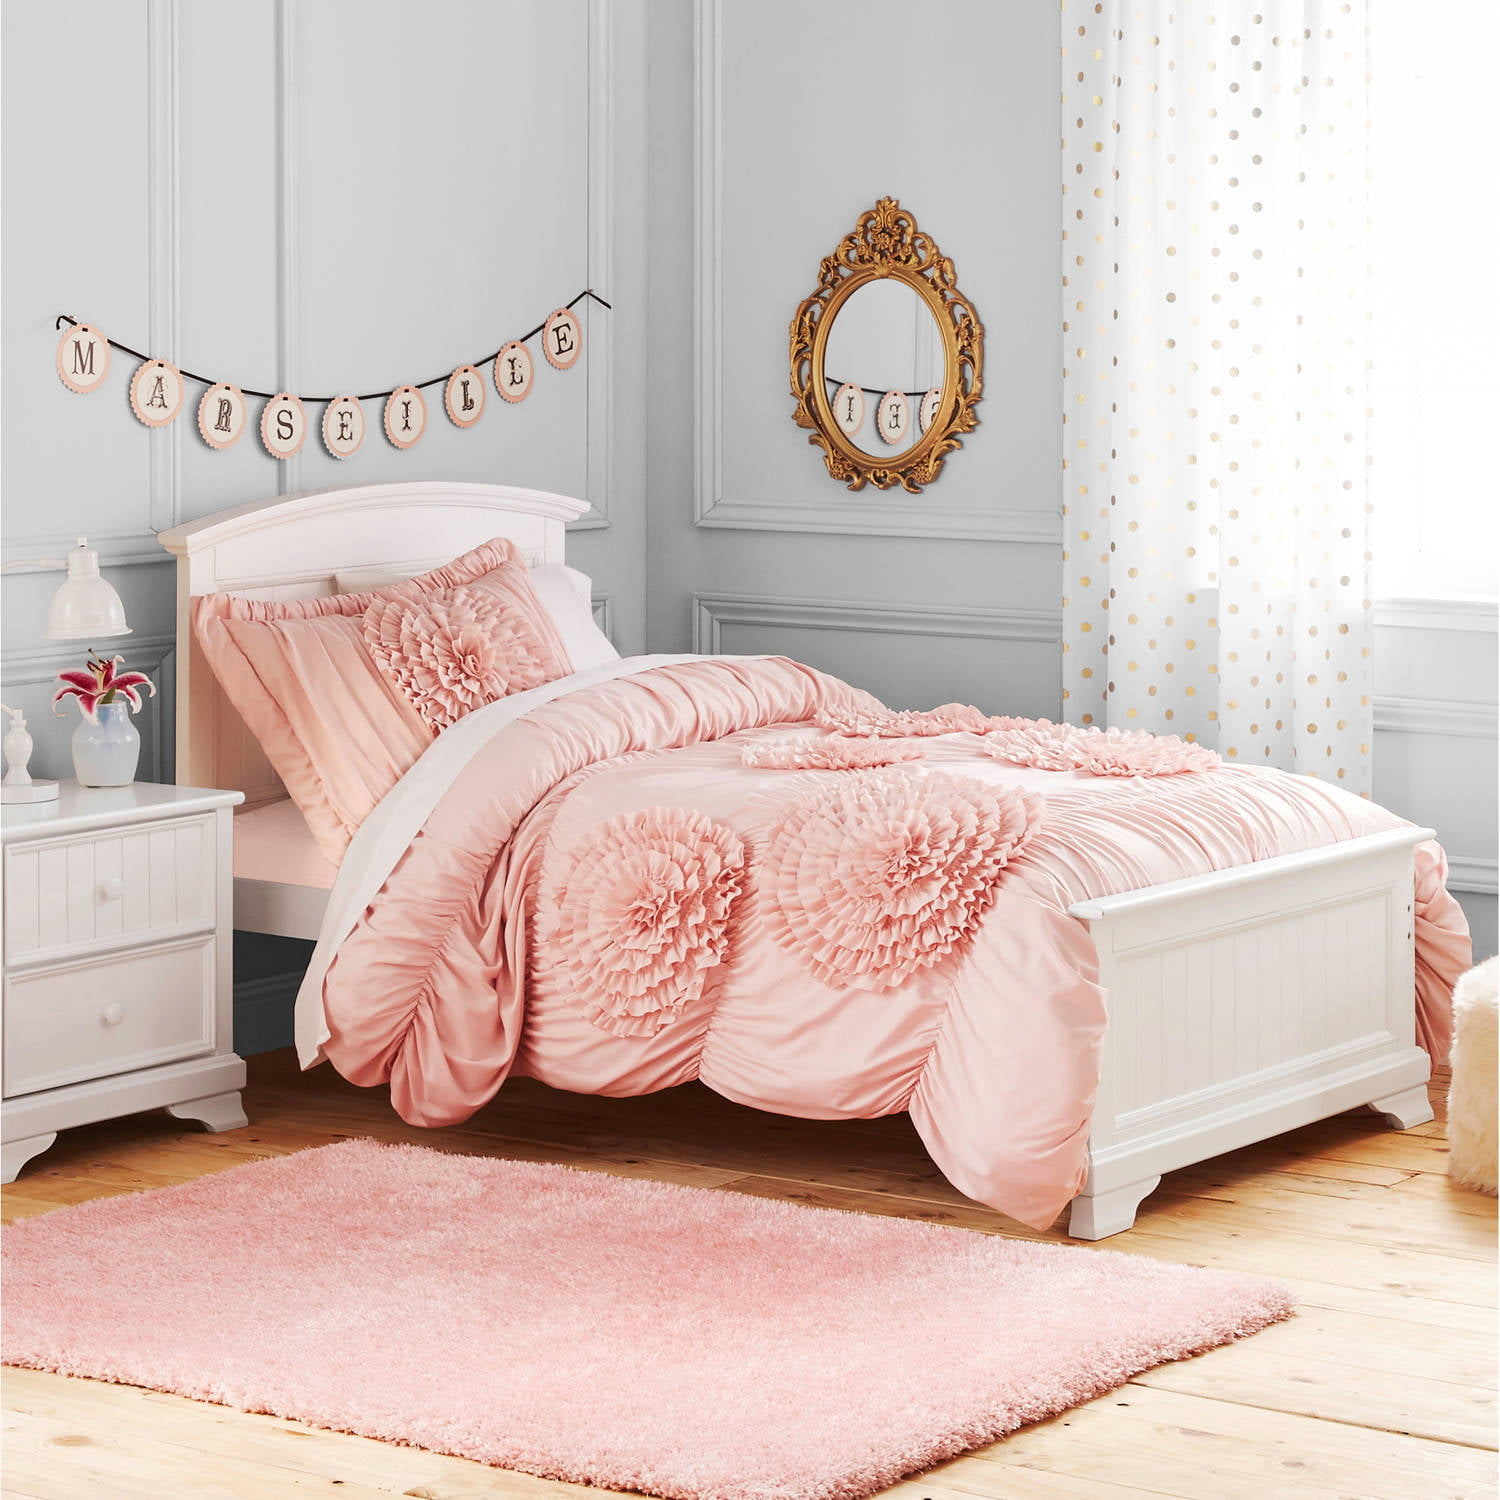 Better Homes and Gardens Ruffled Flowers Bedding forter Set